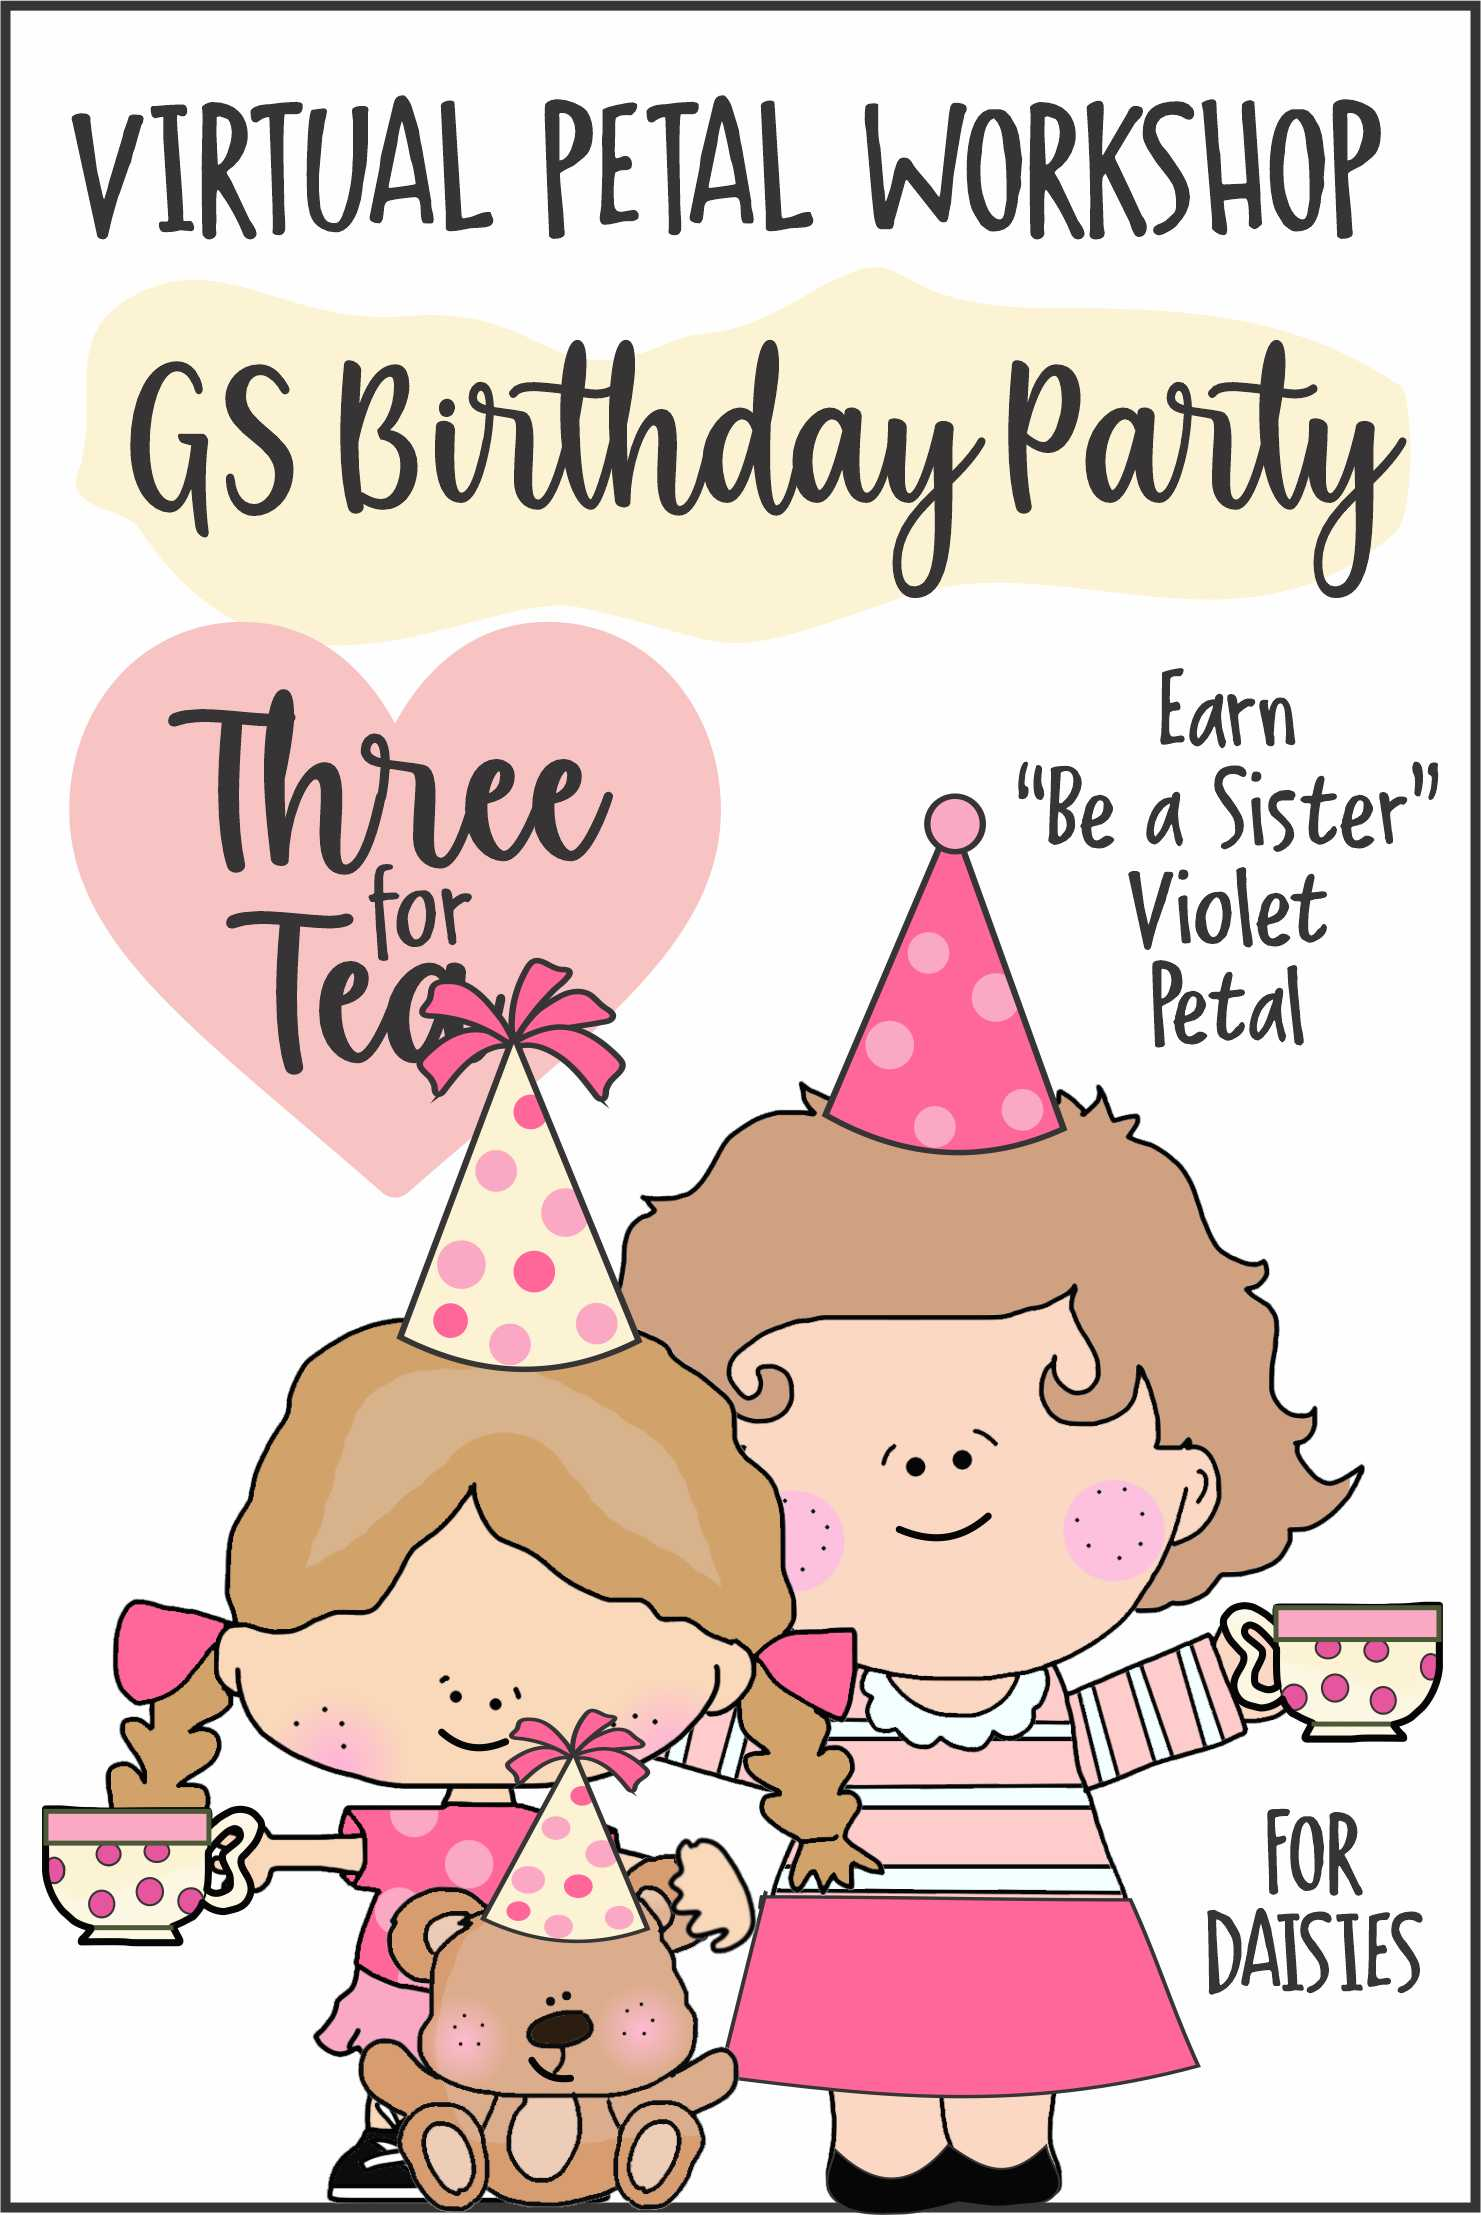 Special Event for Girl Scout Birthday for Daisies. Girls bring a special person and their favorite stuffed animal or doll. Brownies welcomed to join the fun! #makingfriends #teaparty #valentines #virtualvalentines #valentinesteaparty #dolls #tea #party #threefortea #daisypetals #daisies #girlscouts via @gsleader411